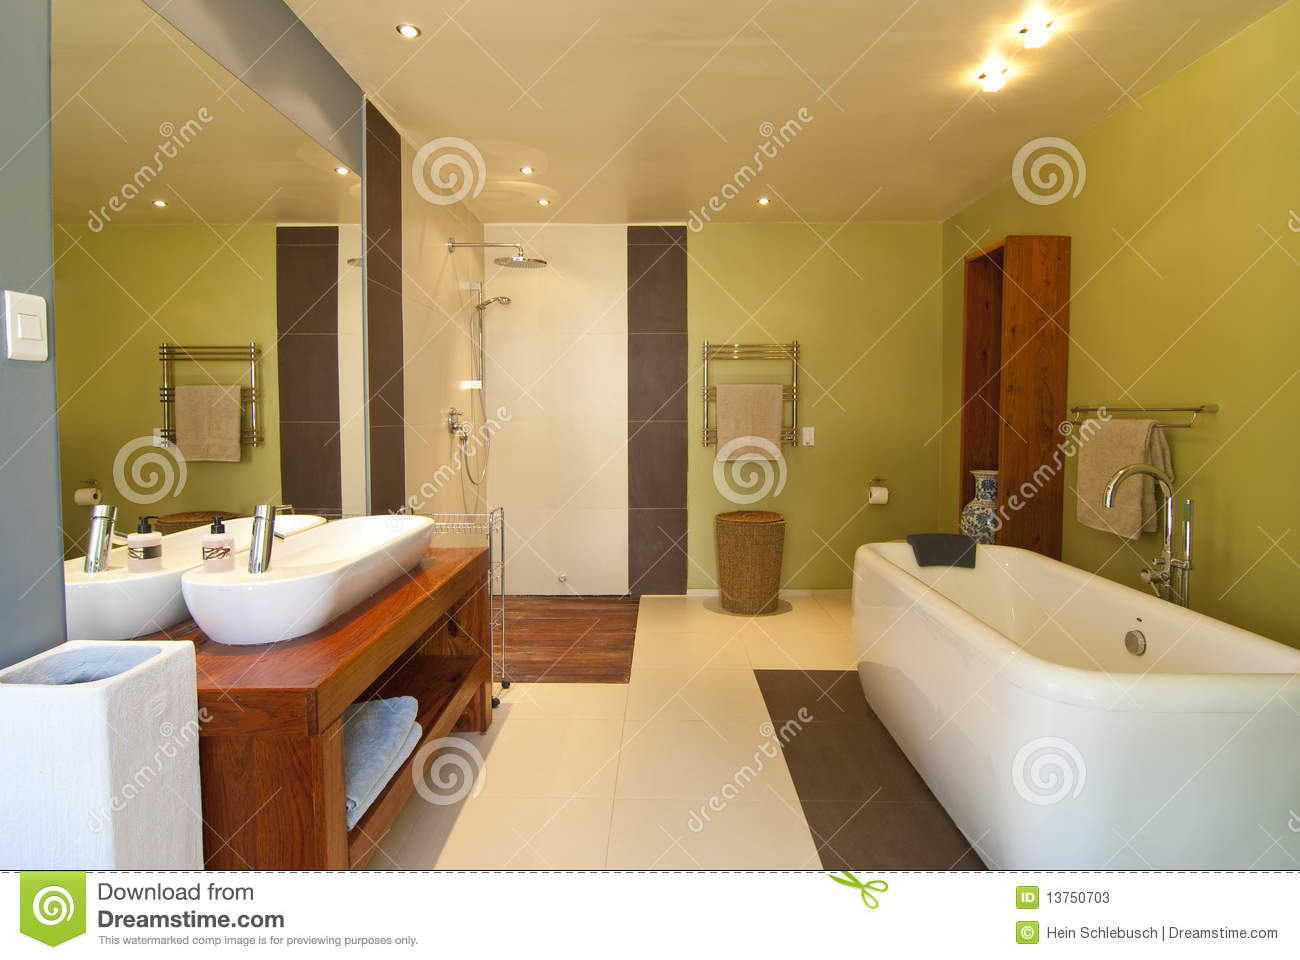 Moderne badkamers stock foto 39 s afbeelding 13750703 - Moderne douche fotos ...